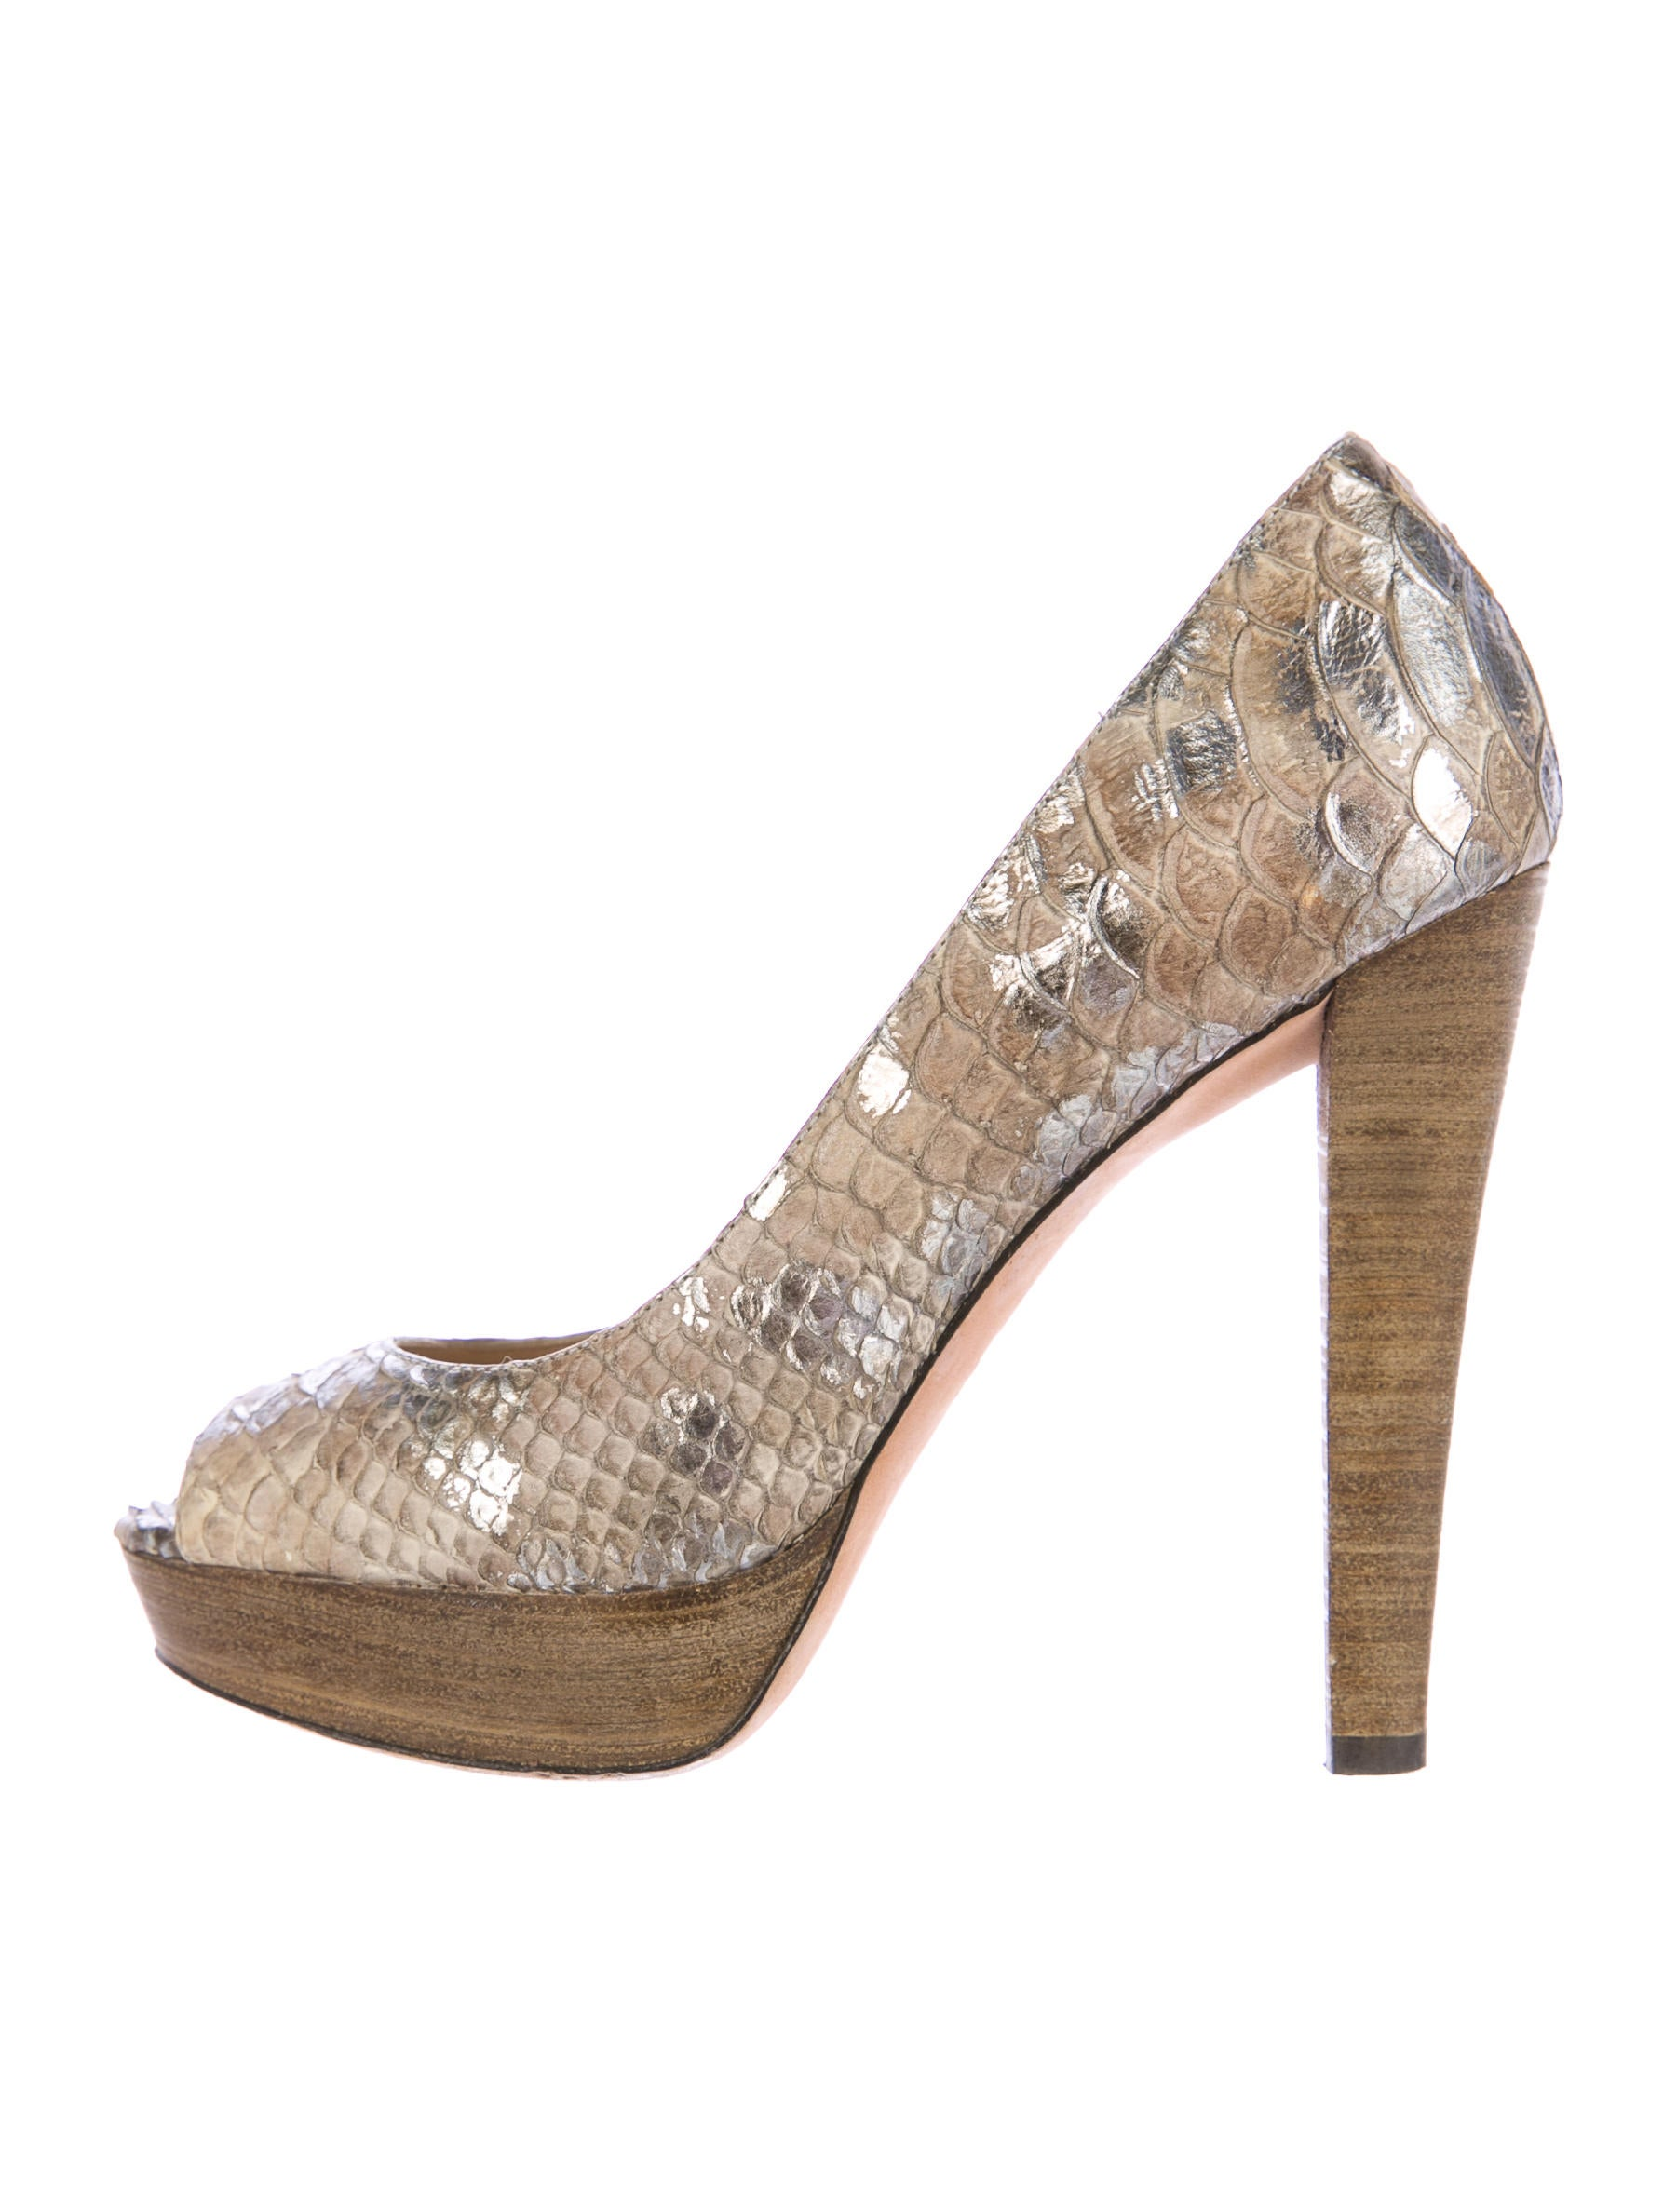 Jean-Michel Cazabat Python Peep-Toe Pumps sale new pay with visa cheap online 4RUnNY